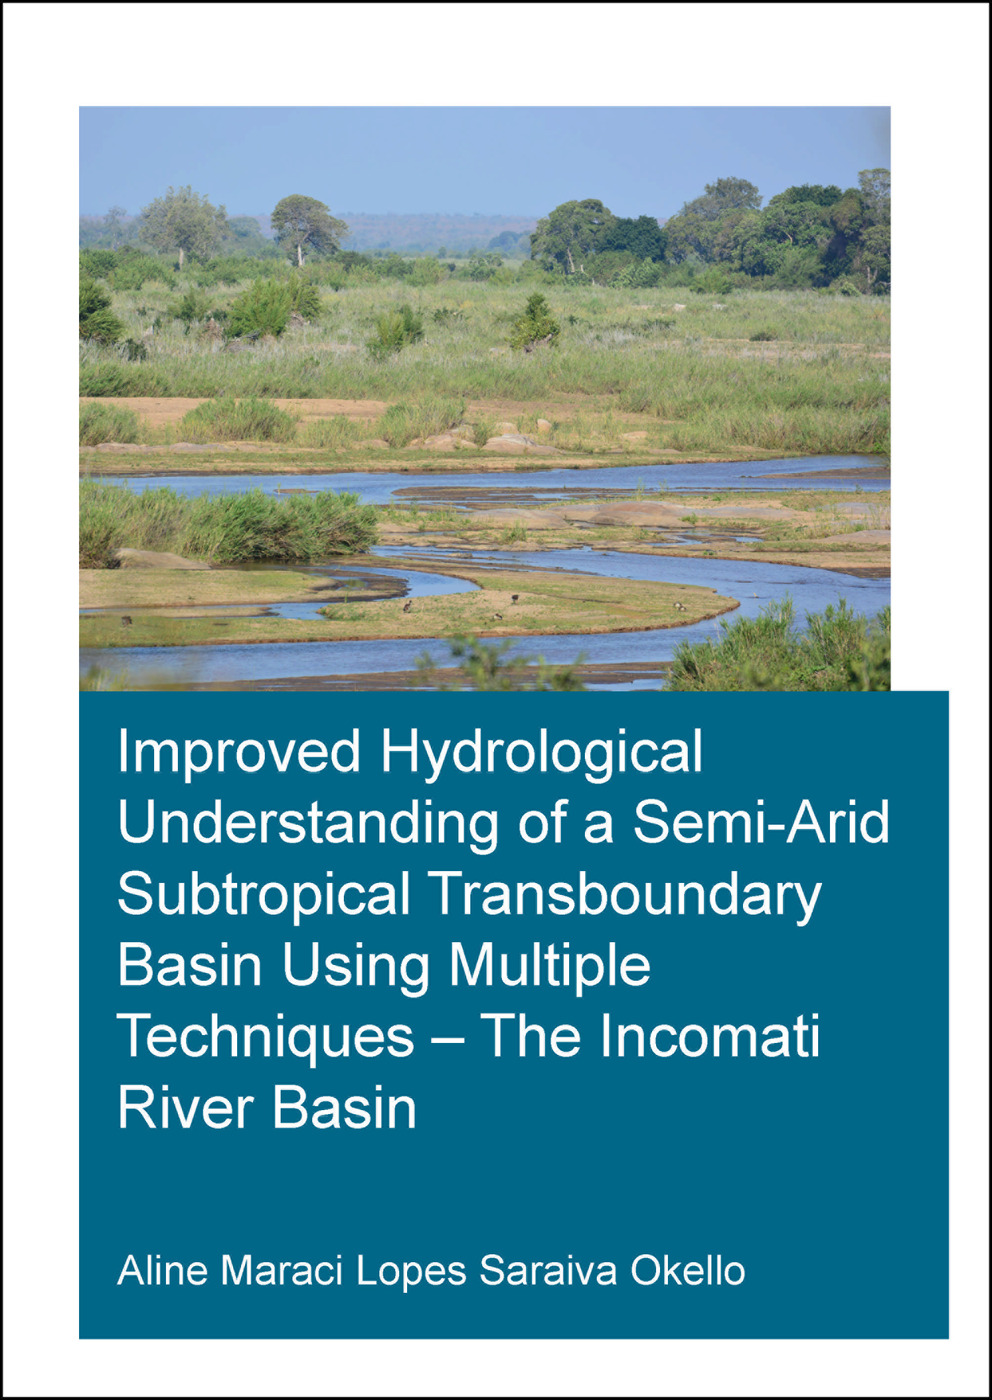 Improved Hydrological Understanding of a Semi-Arid Subtropical Transboundary Basin Using Multiple Techniques - The Incomati River Basin book cover